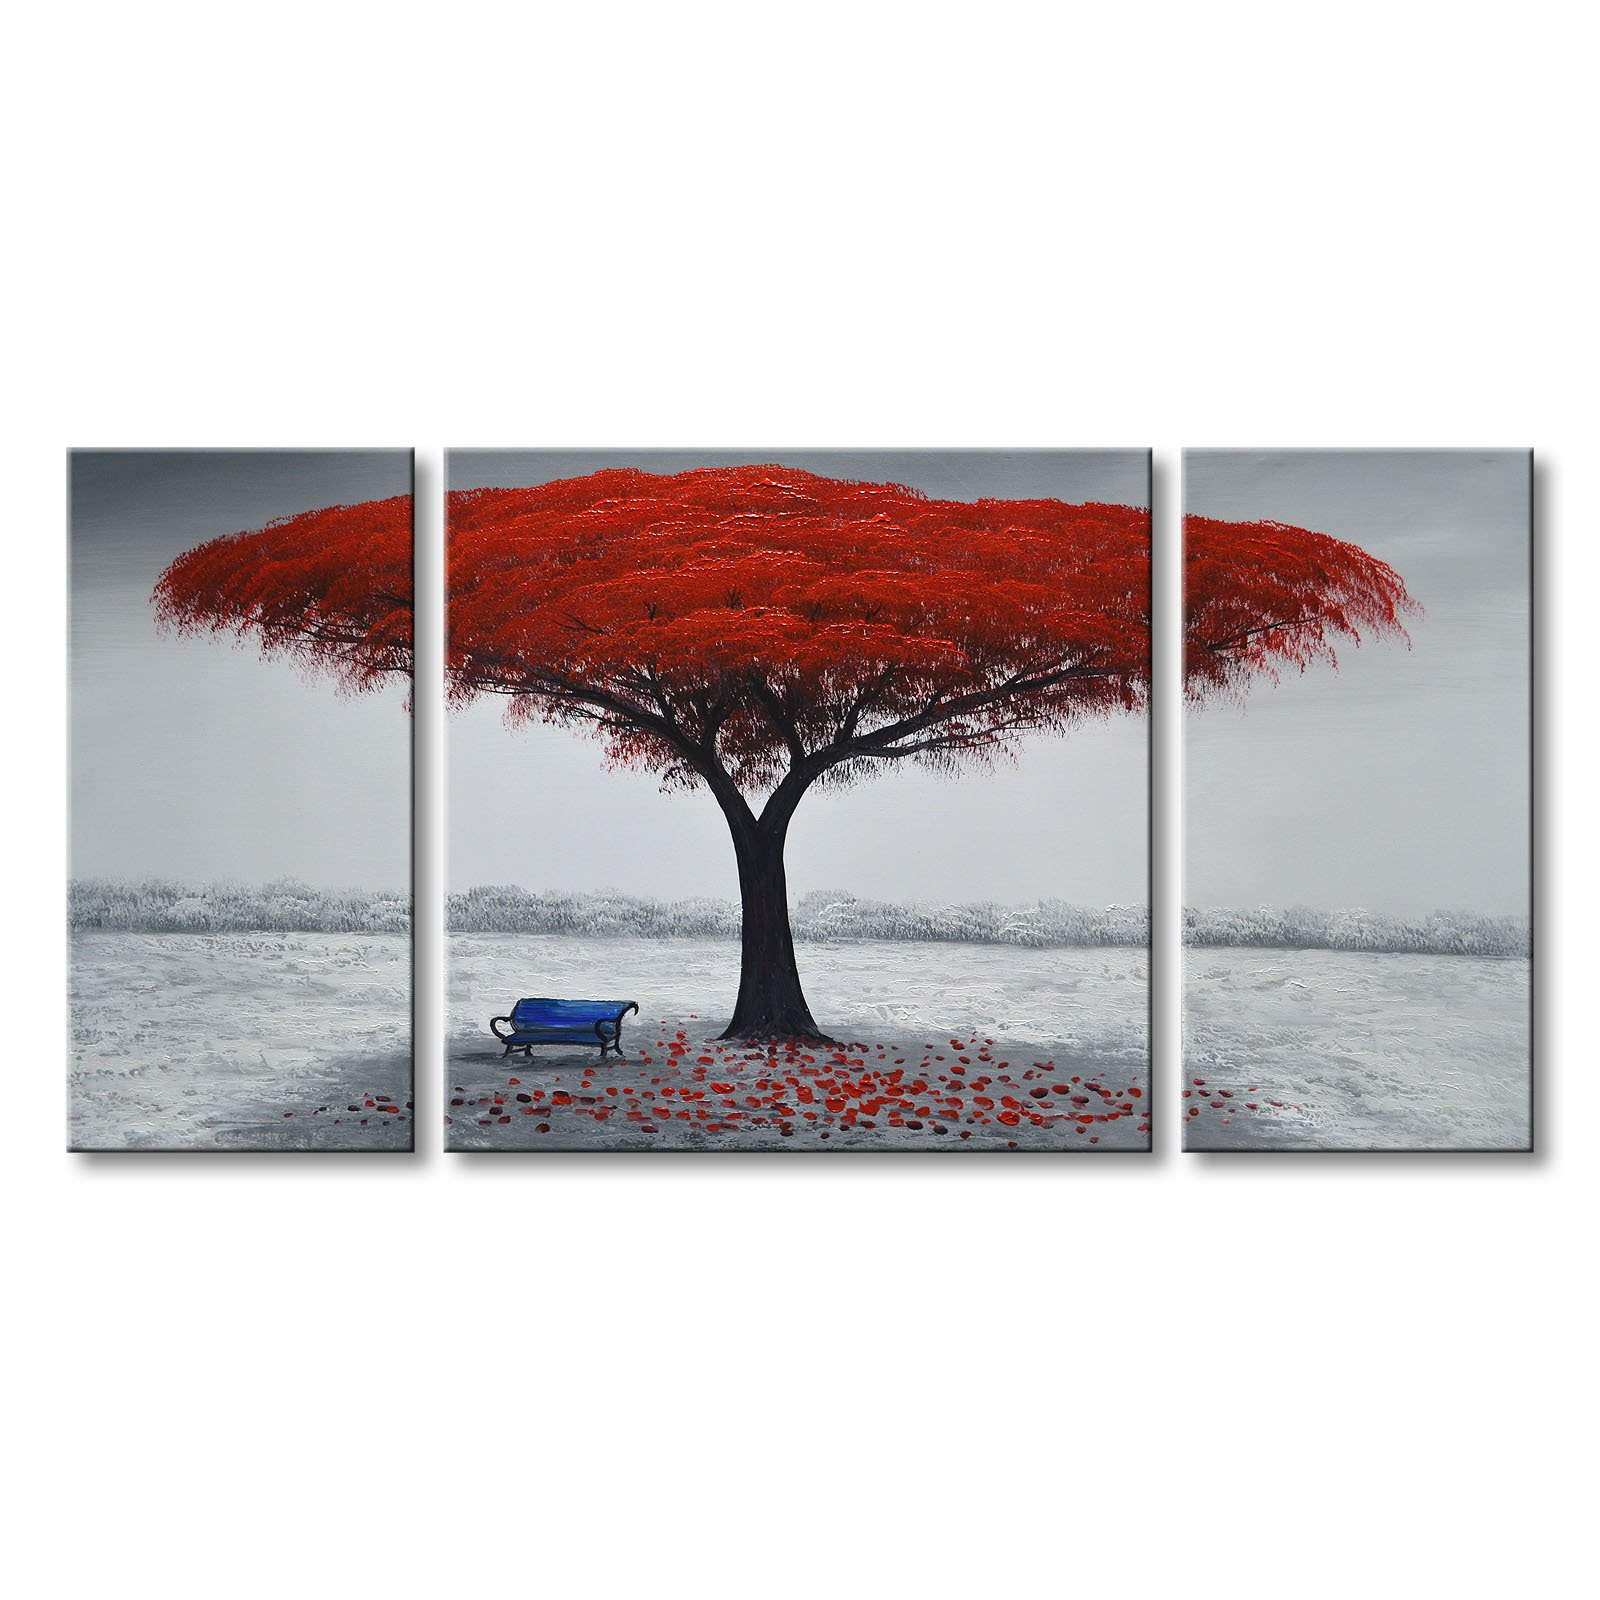 Winpeak Art Chair Under Red Tree Hand-painted Modern Large Oil Painting Landscape Canvas Wall Art Abstract Picture Contemporary Artwork